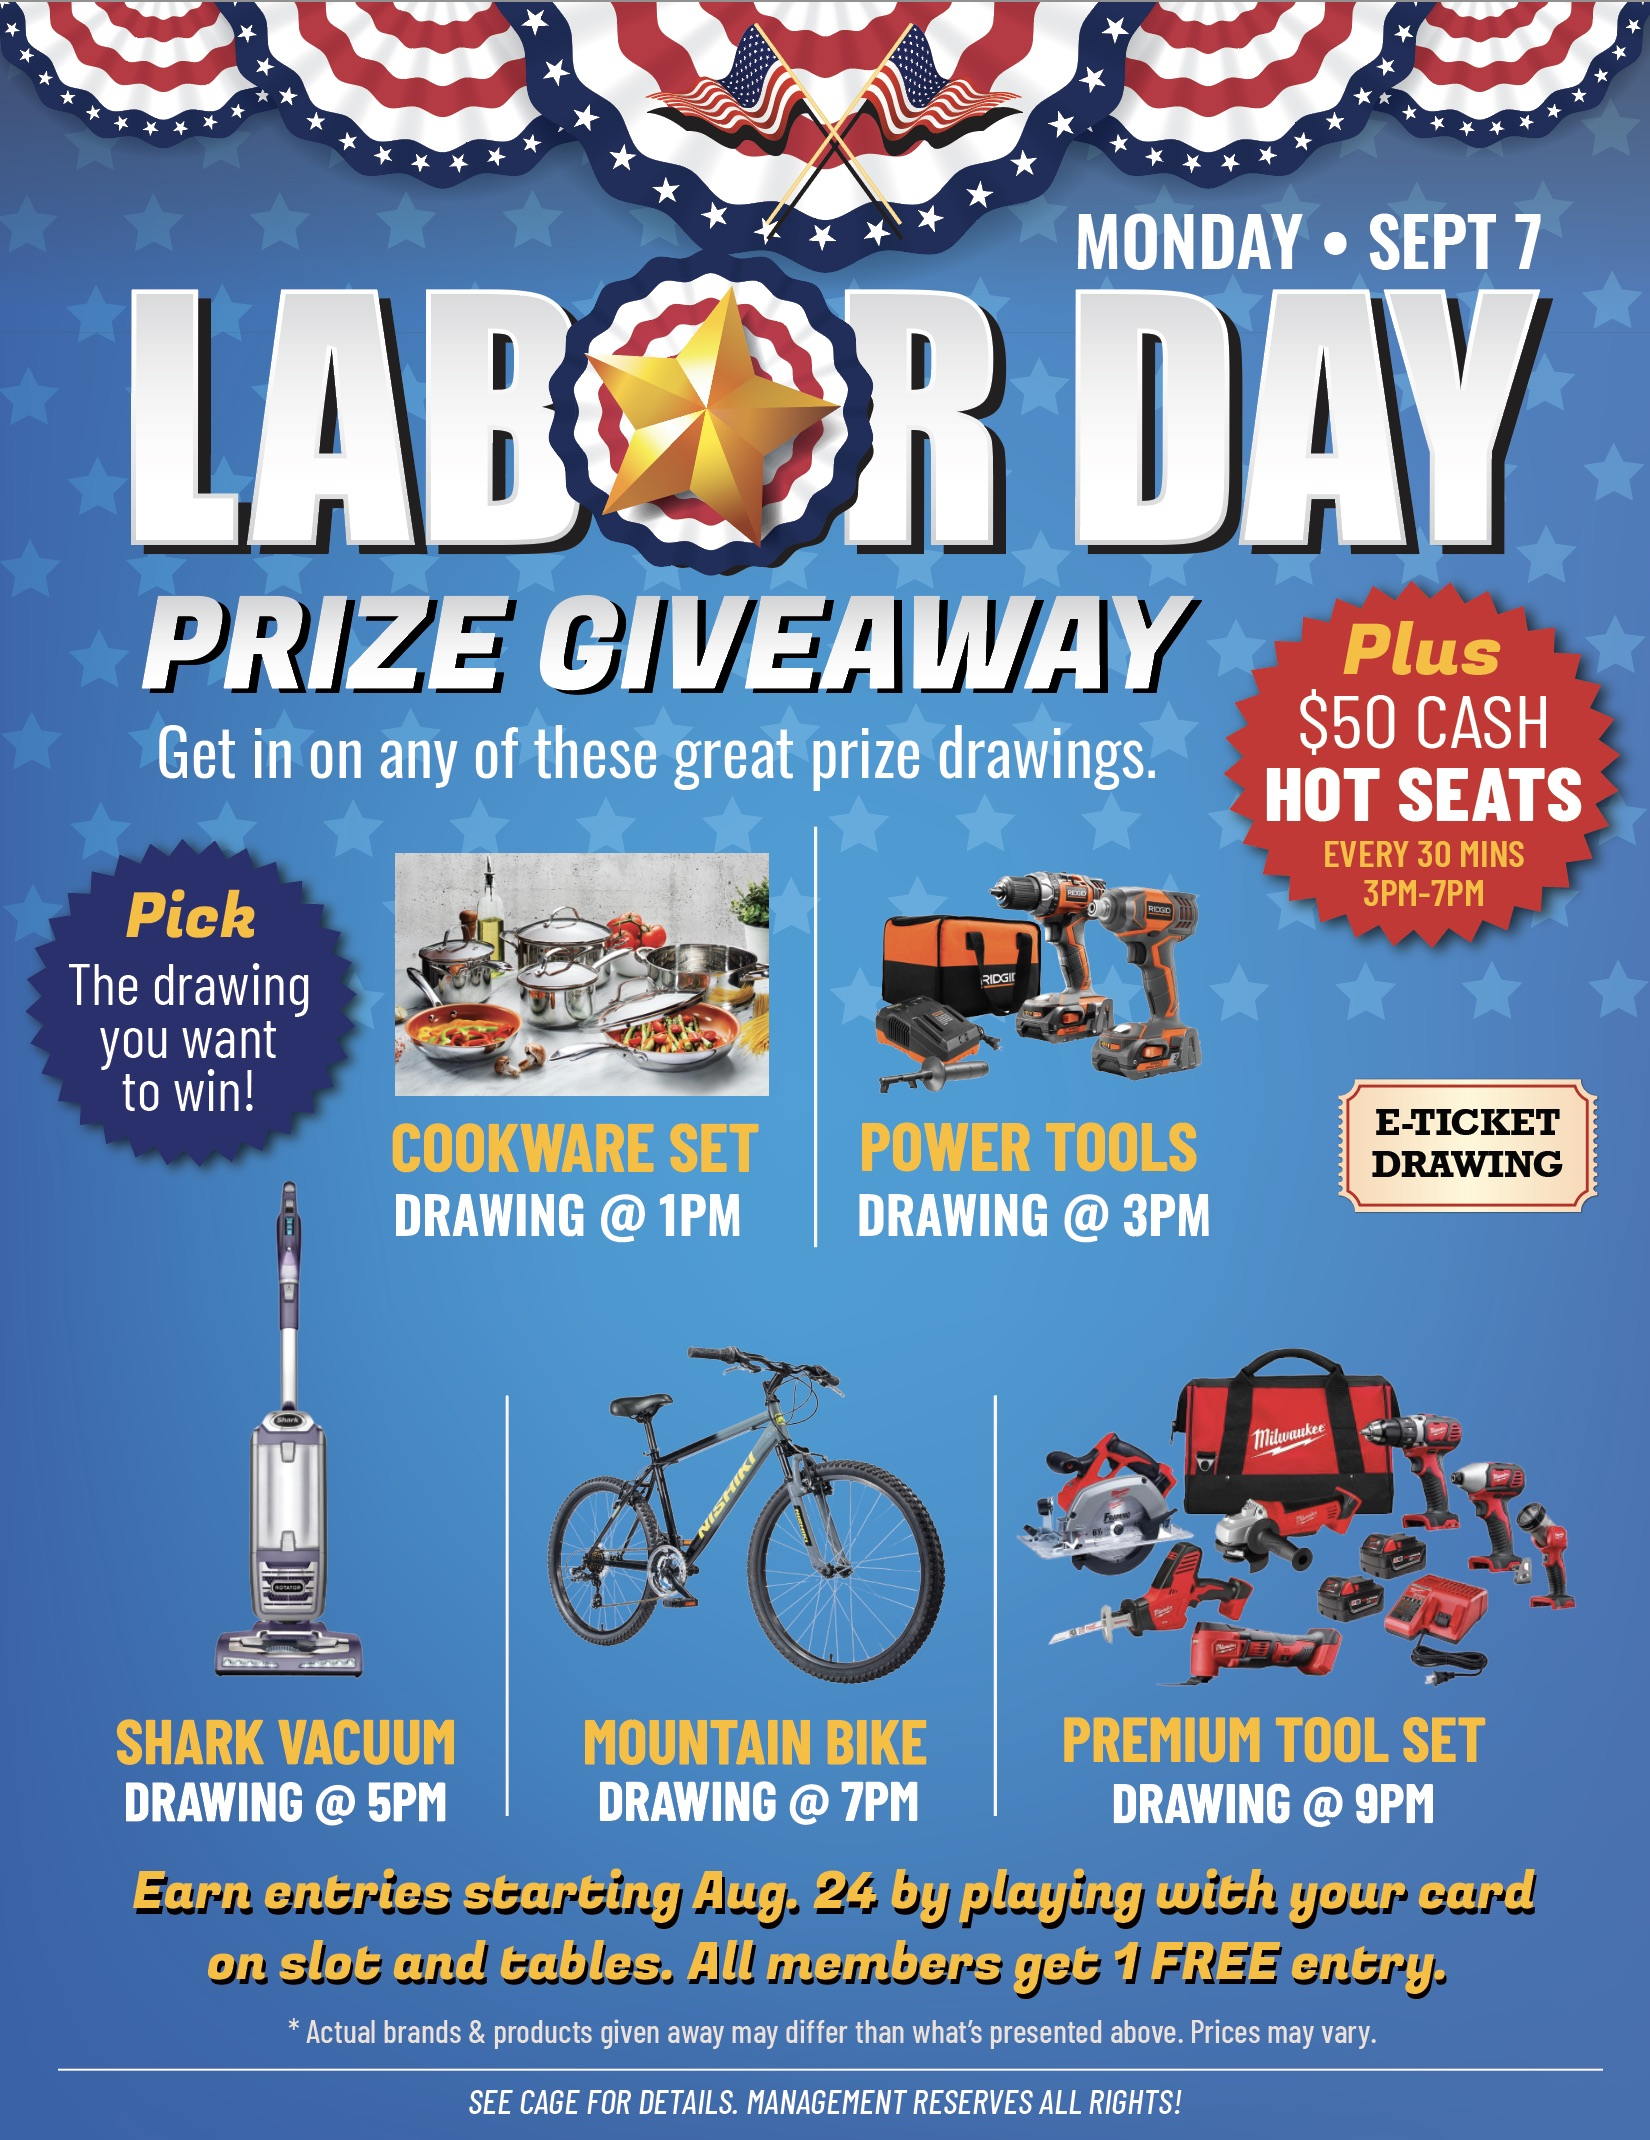 LABOR DAY PRIZE GIVEAWAY PAIUTE PALACE